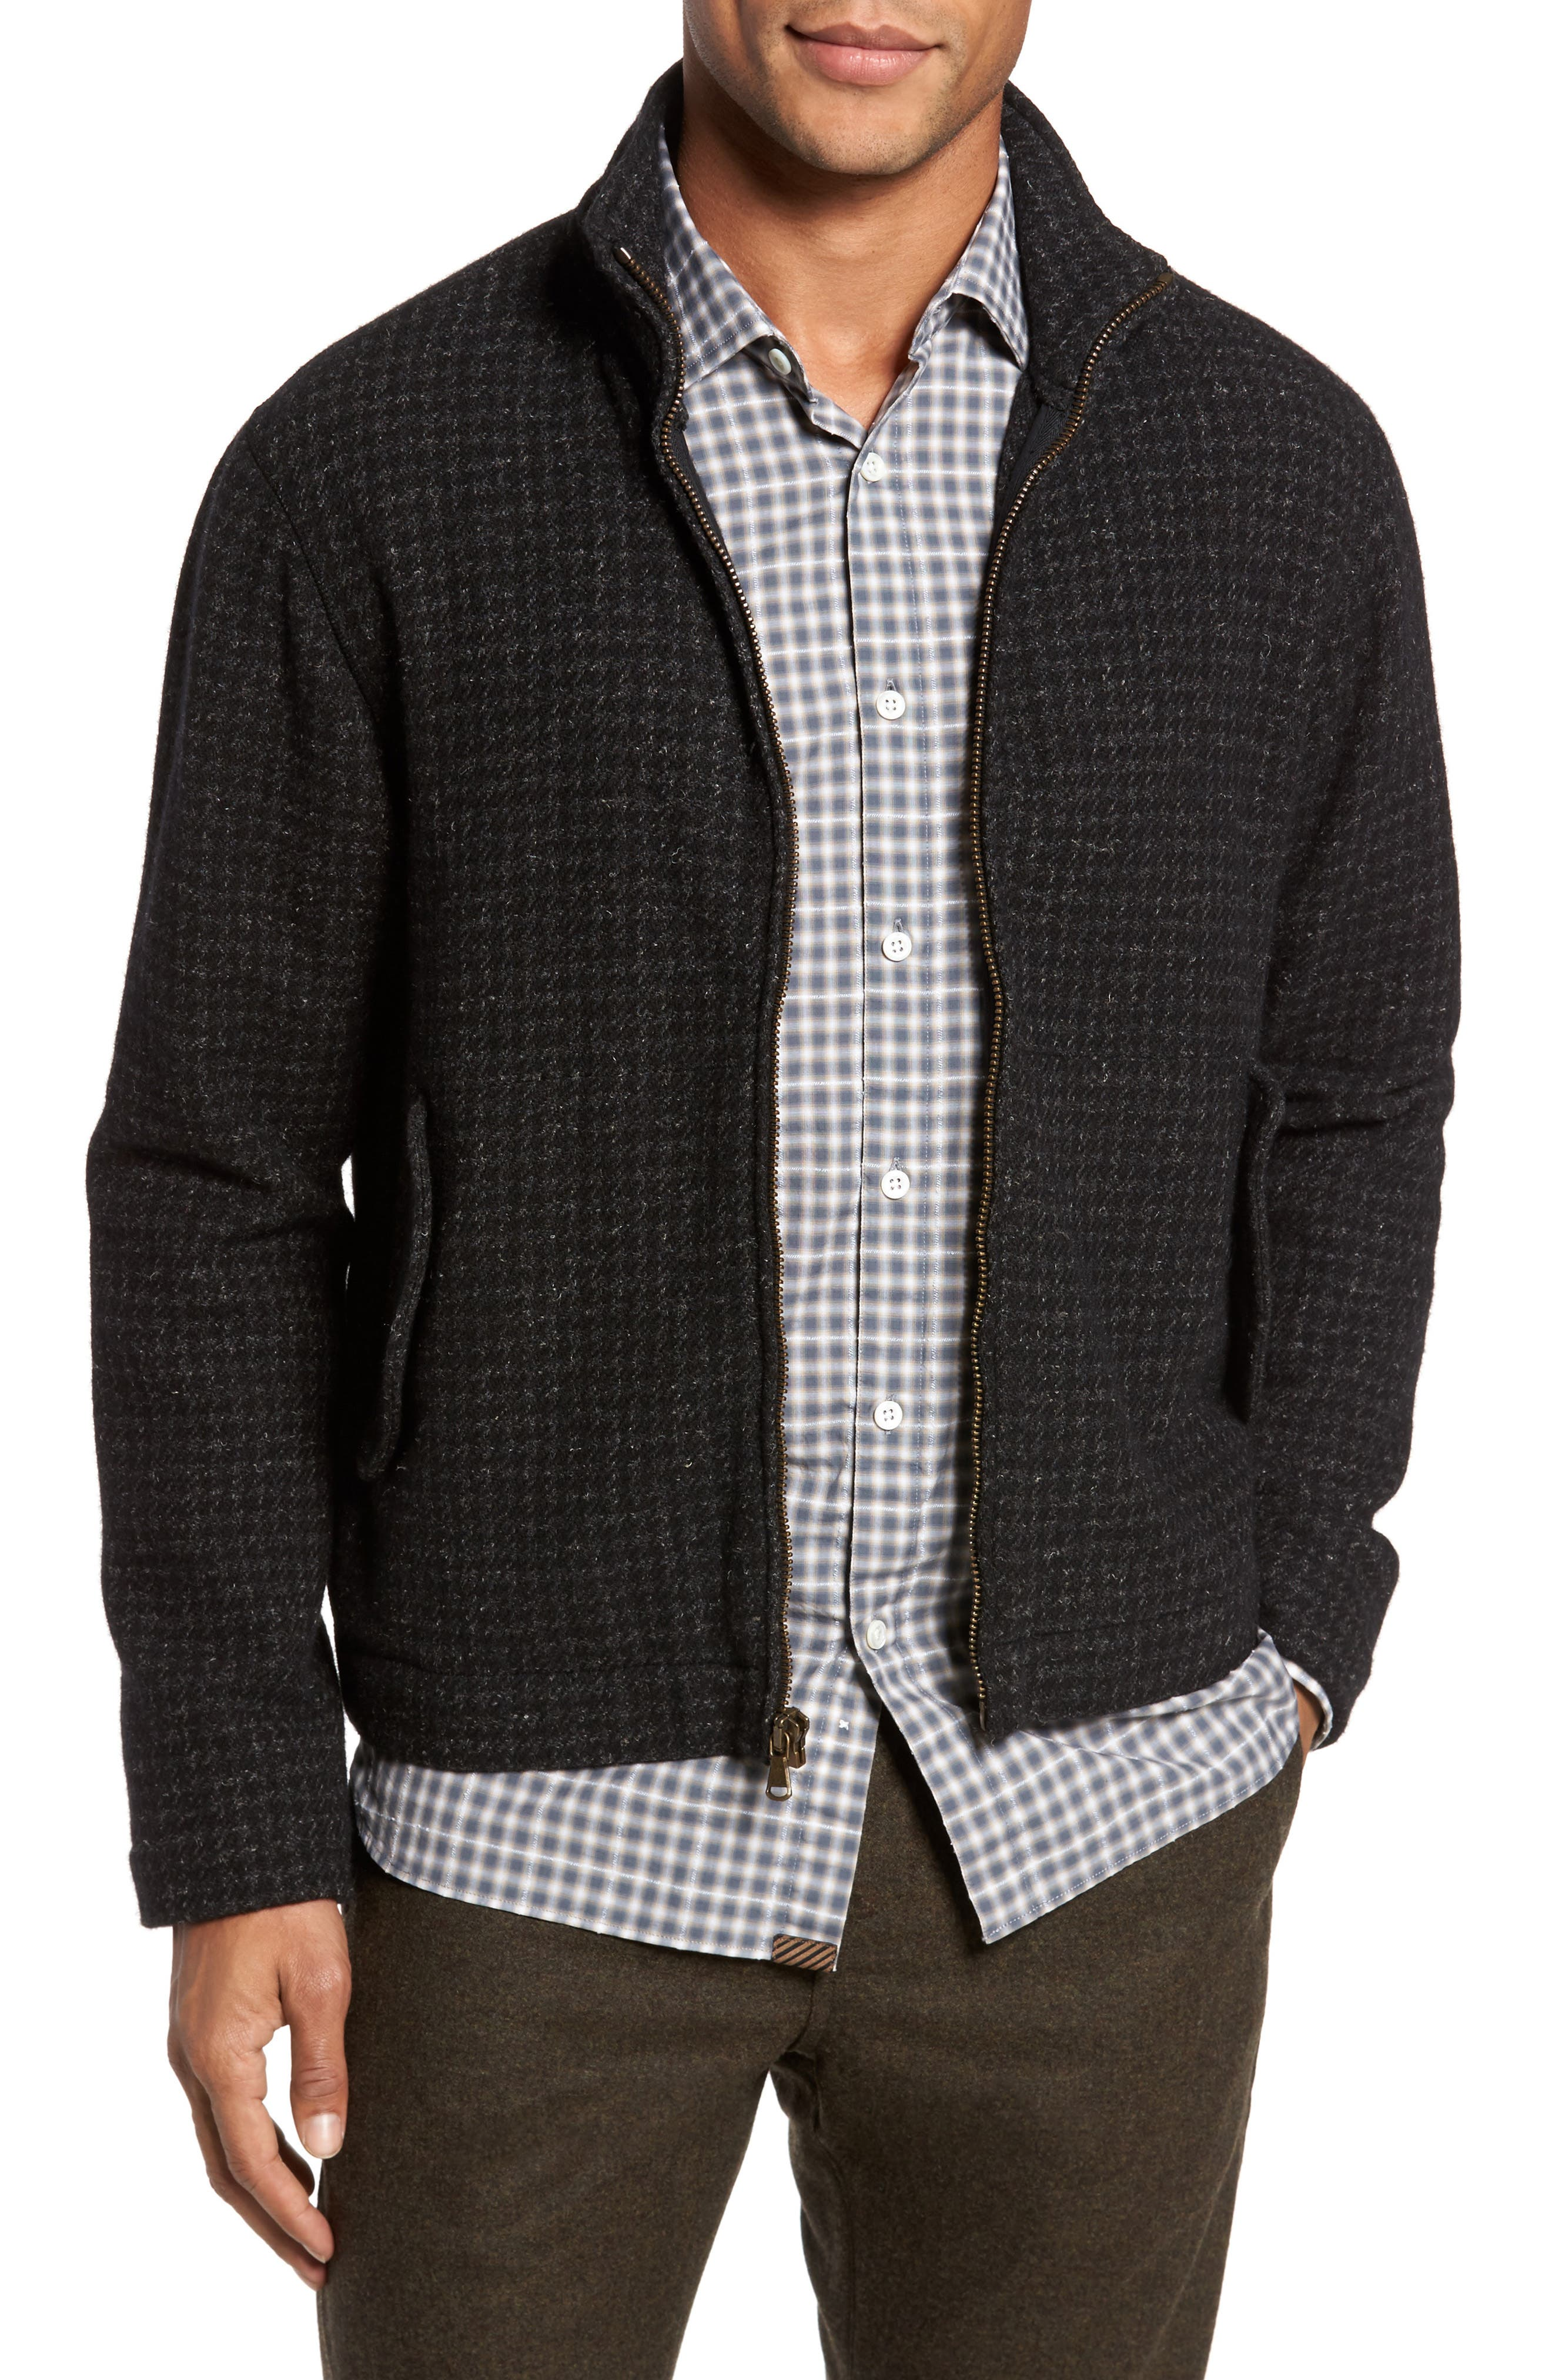 Neil Wool Blend Zip Front Jacket,                         Main,                         color, Charcoal